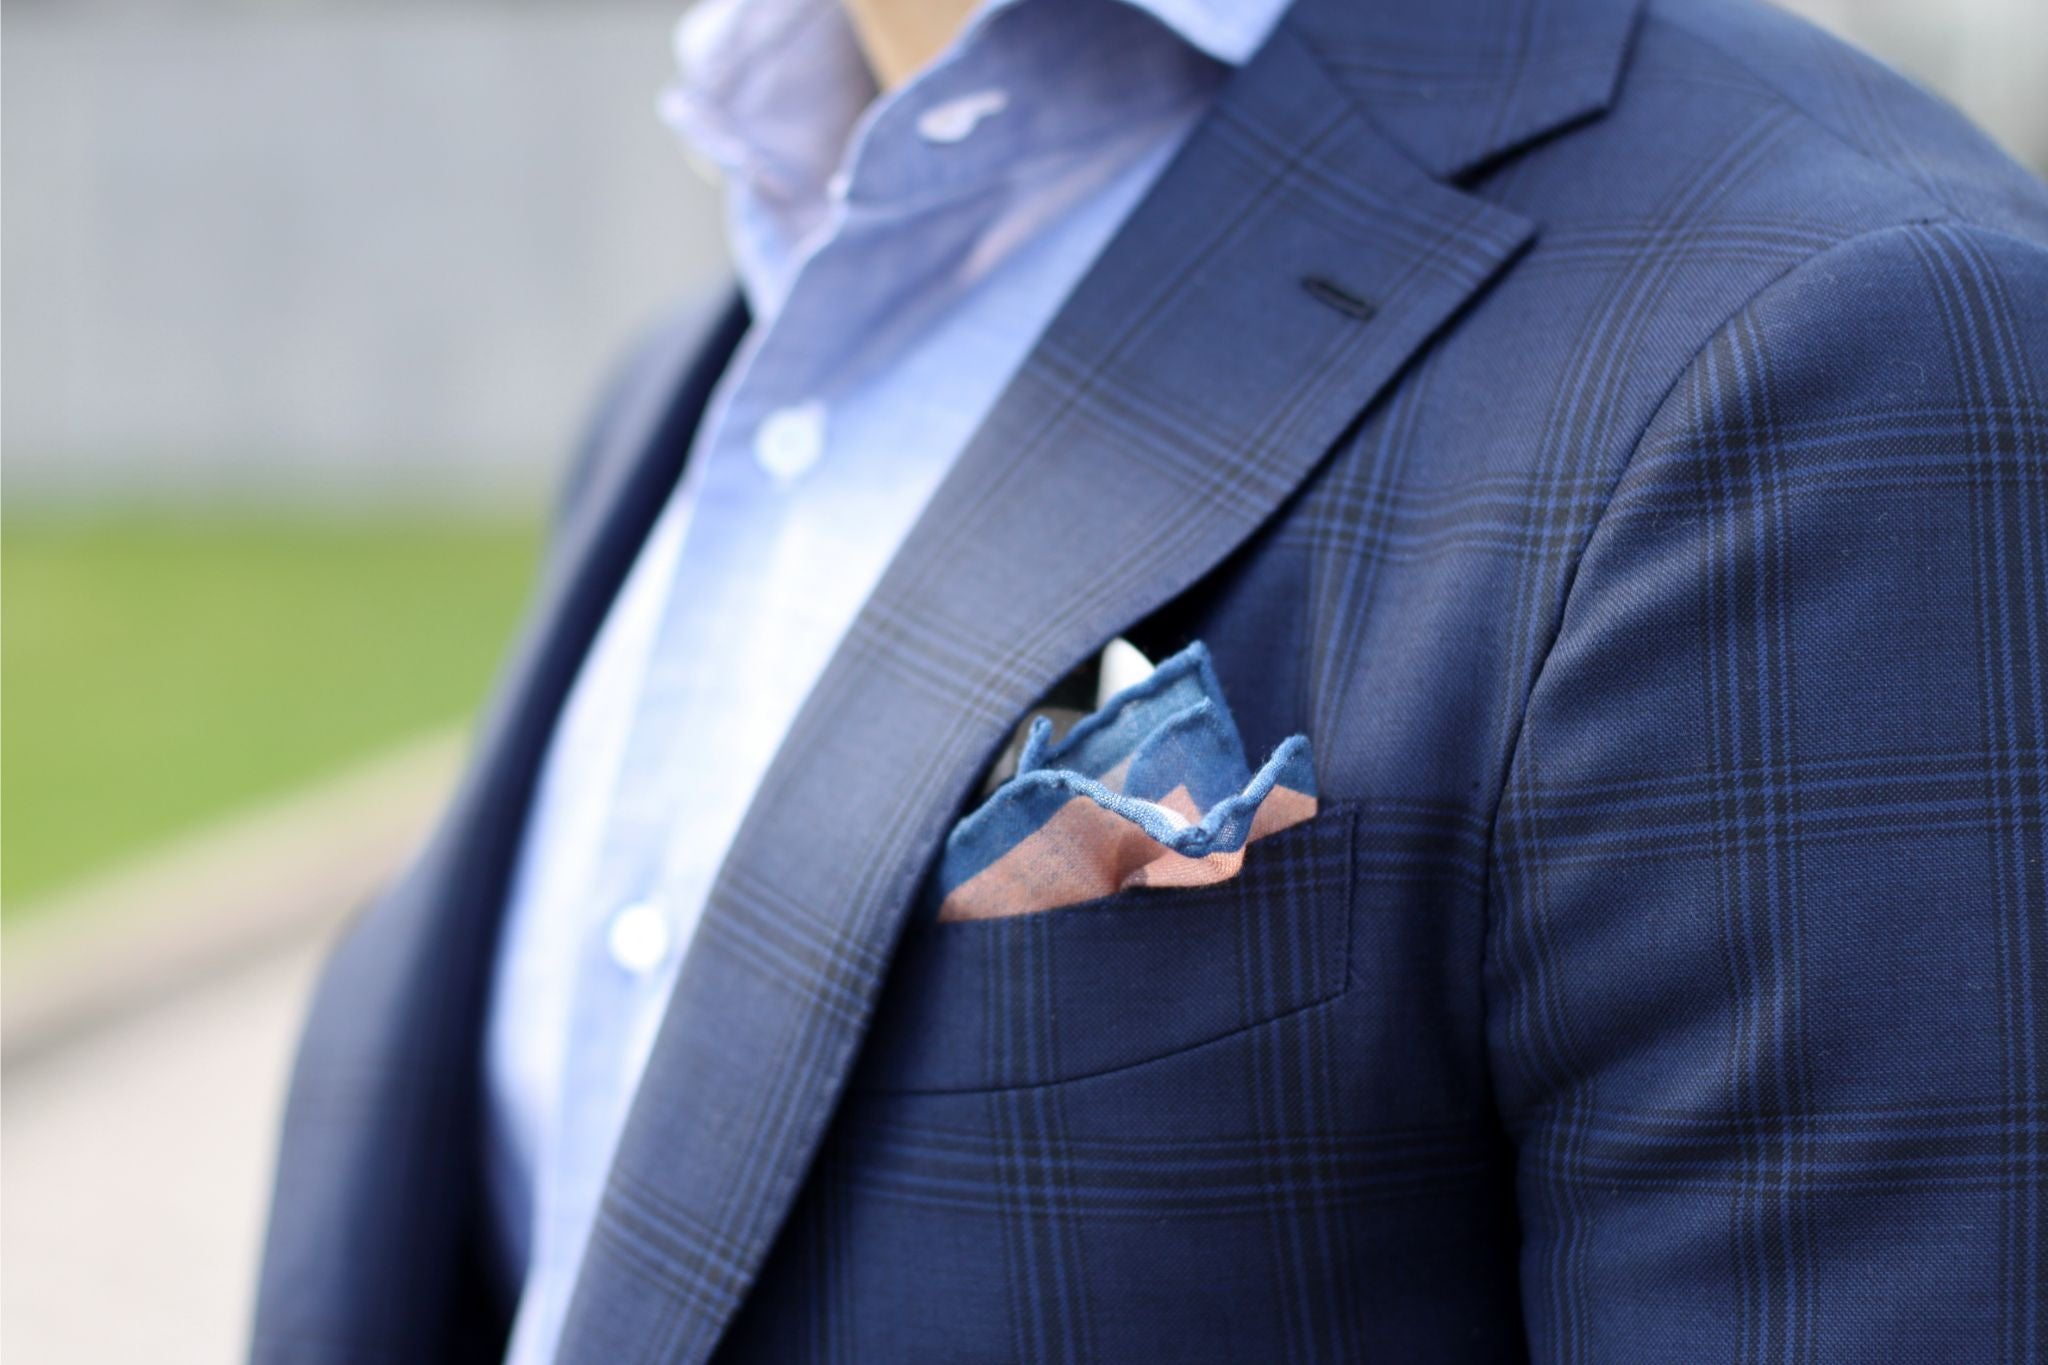 Christian Kimber pocket square with Isaia shirt and blue suit jacket